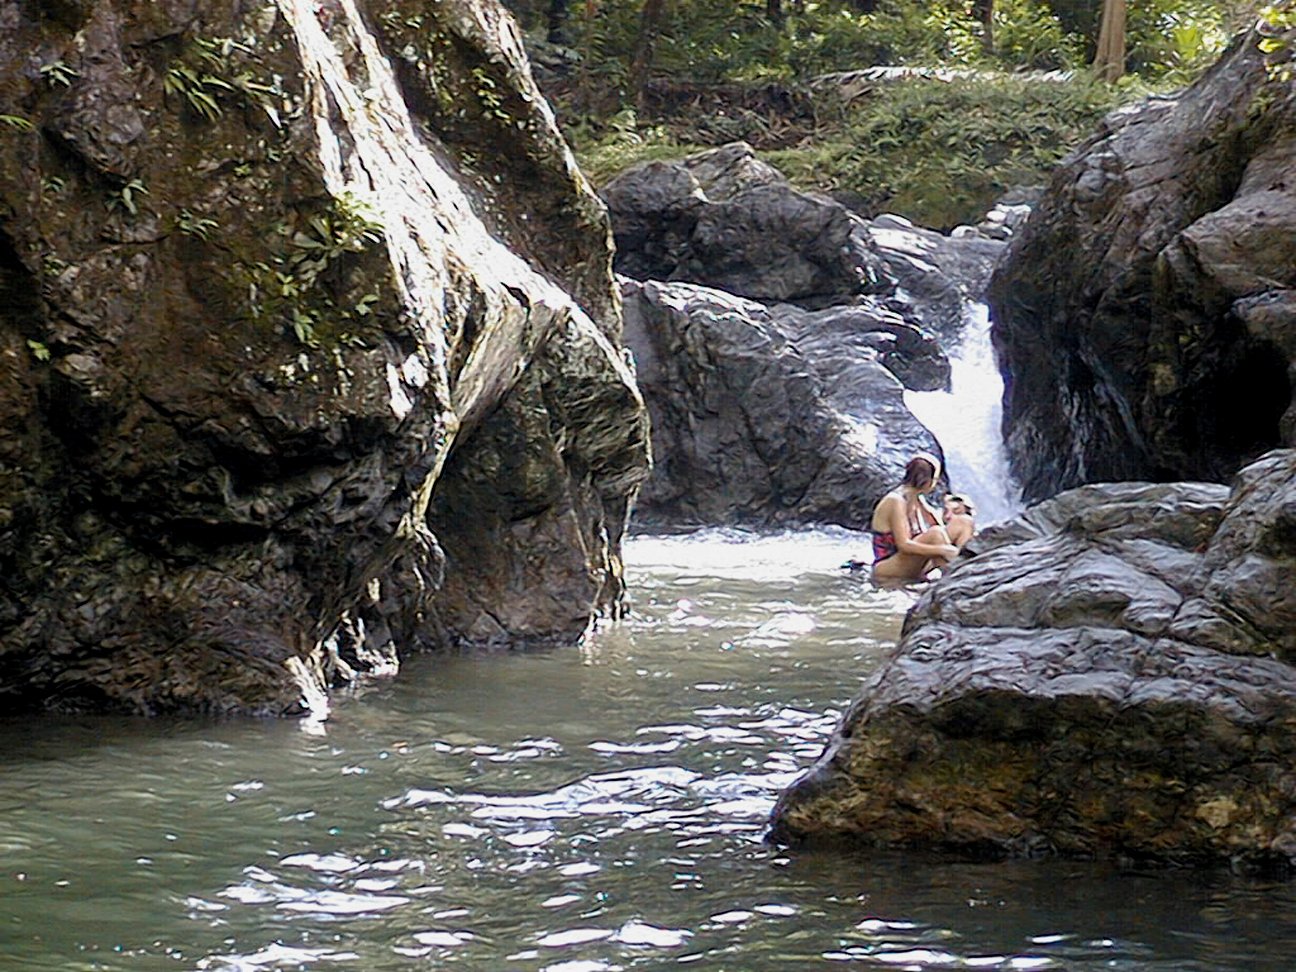 A swimming hole in the Rio Tigre